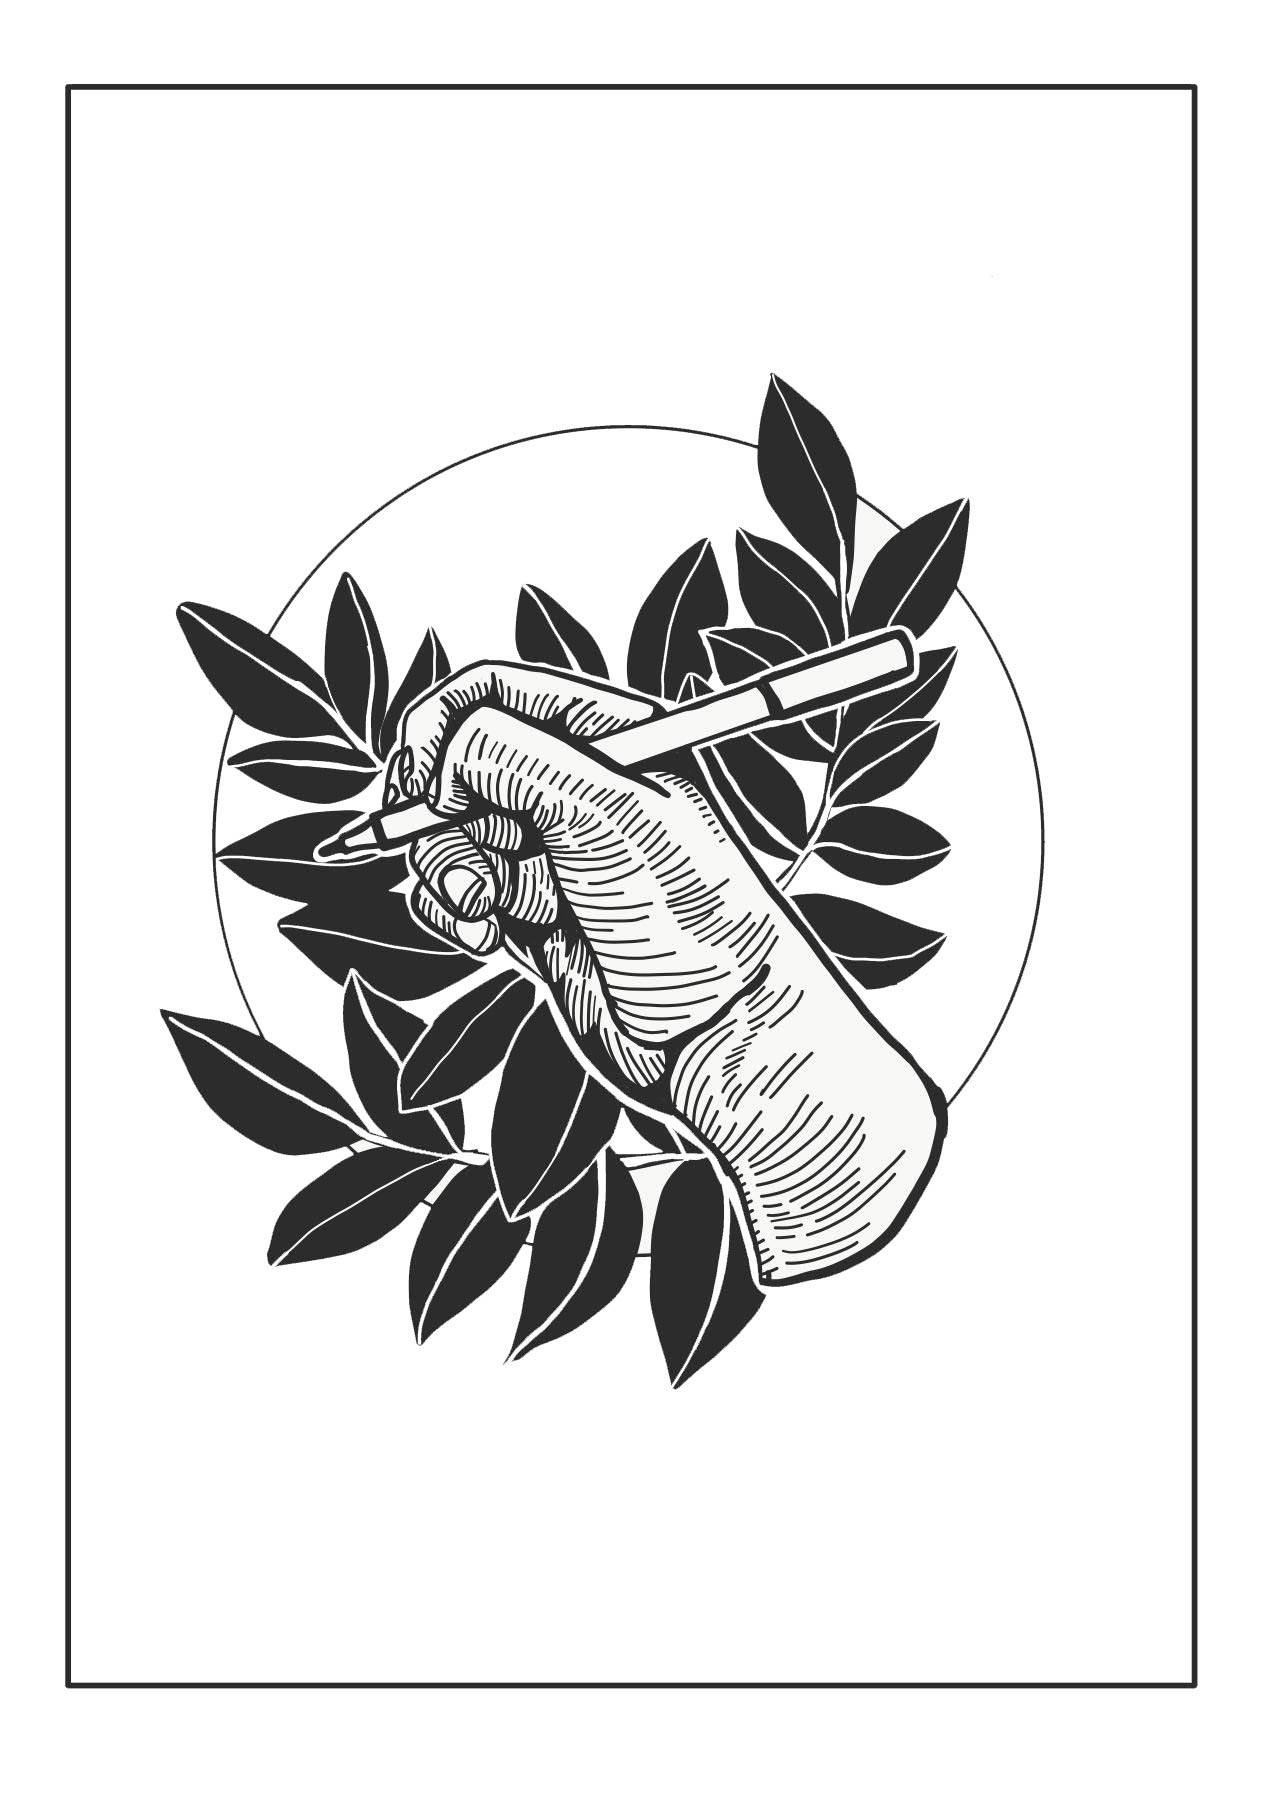 Illustration of a hand holding a pen with leaves in the background